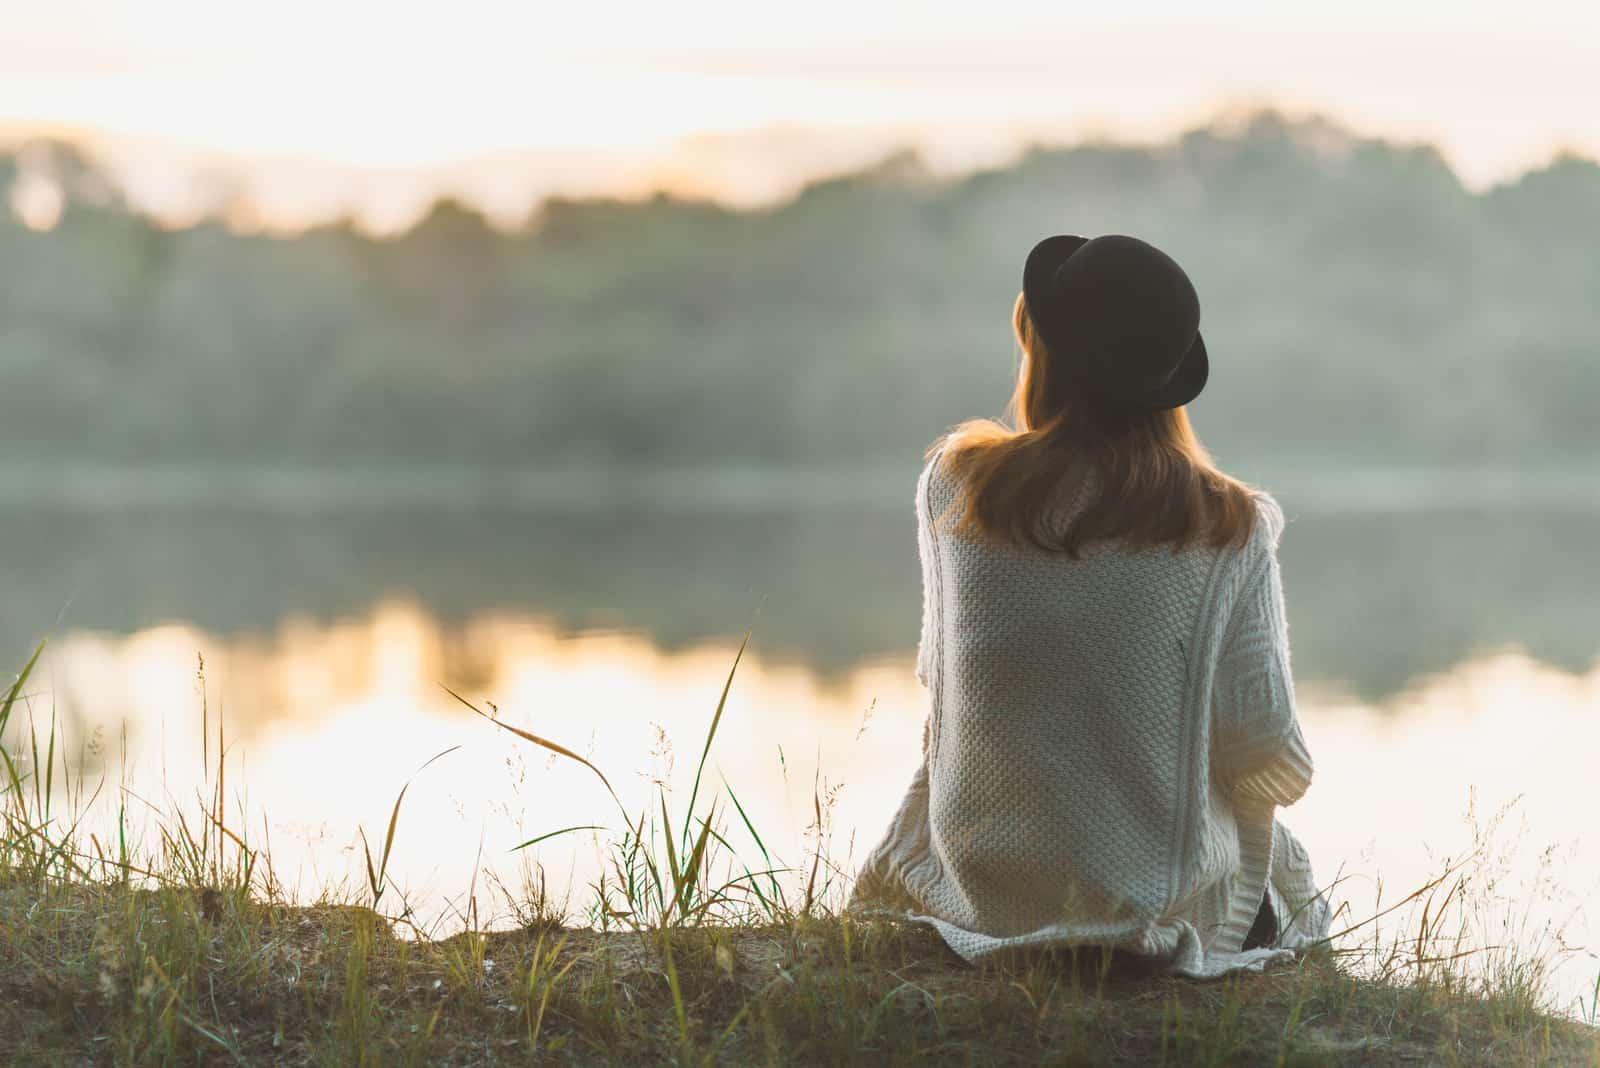 a woman with a hat on her head sits on the grass and looks at the river